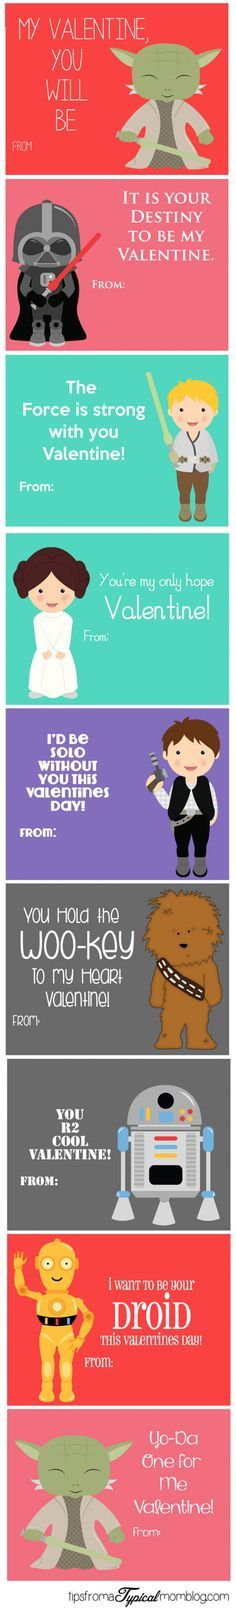 Star Wars Valentine's Day Card For Your Geeky Other Half